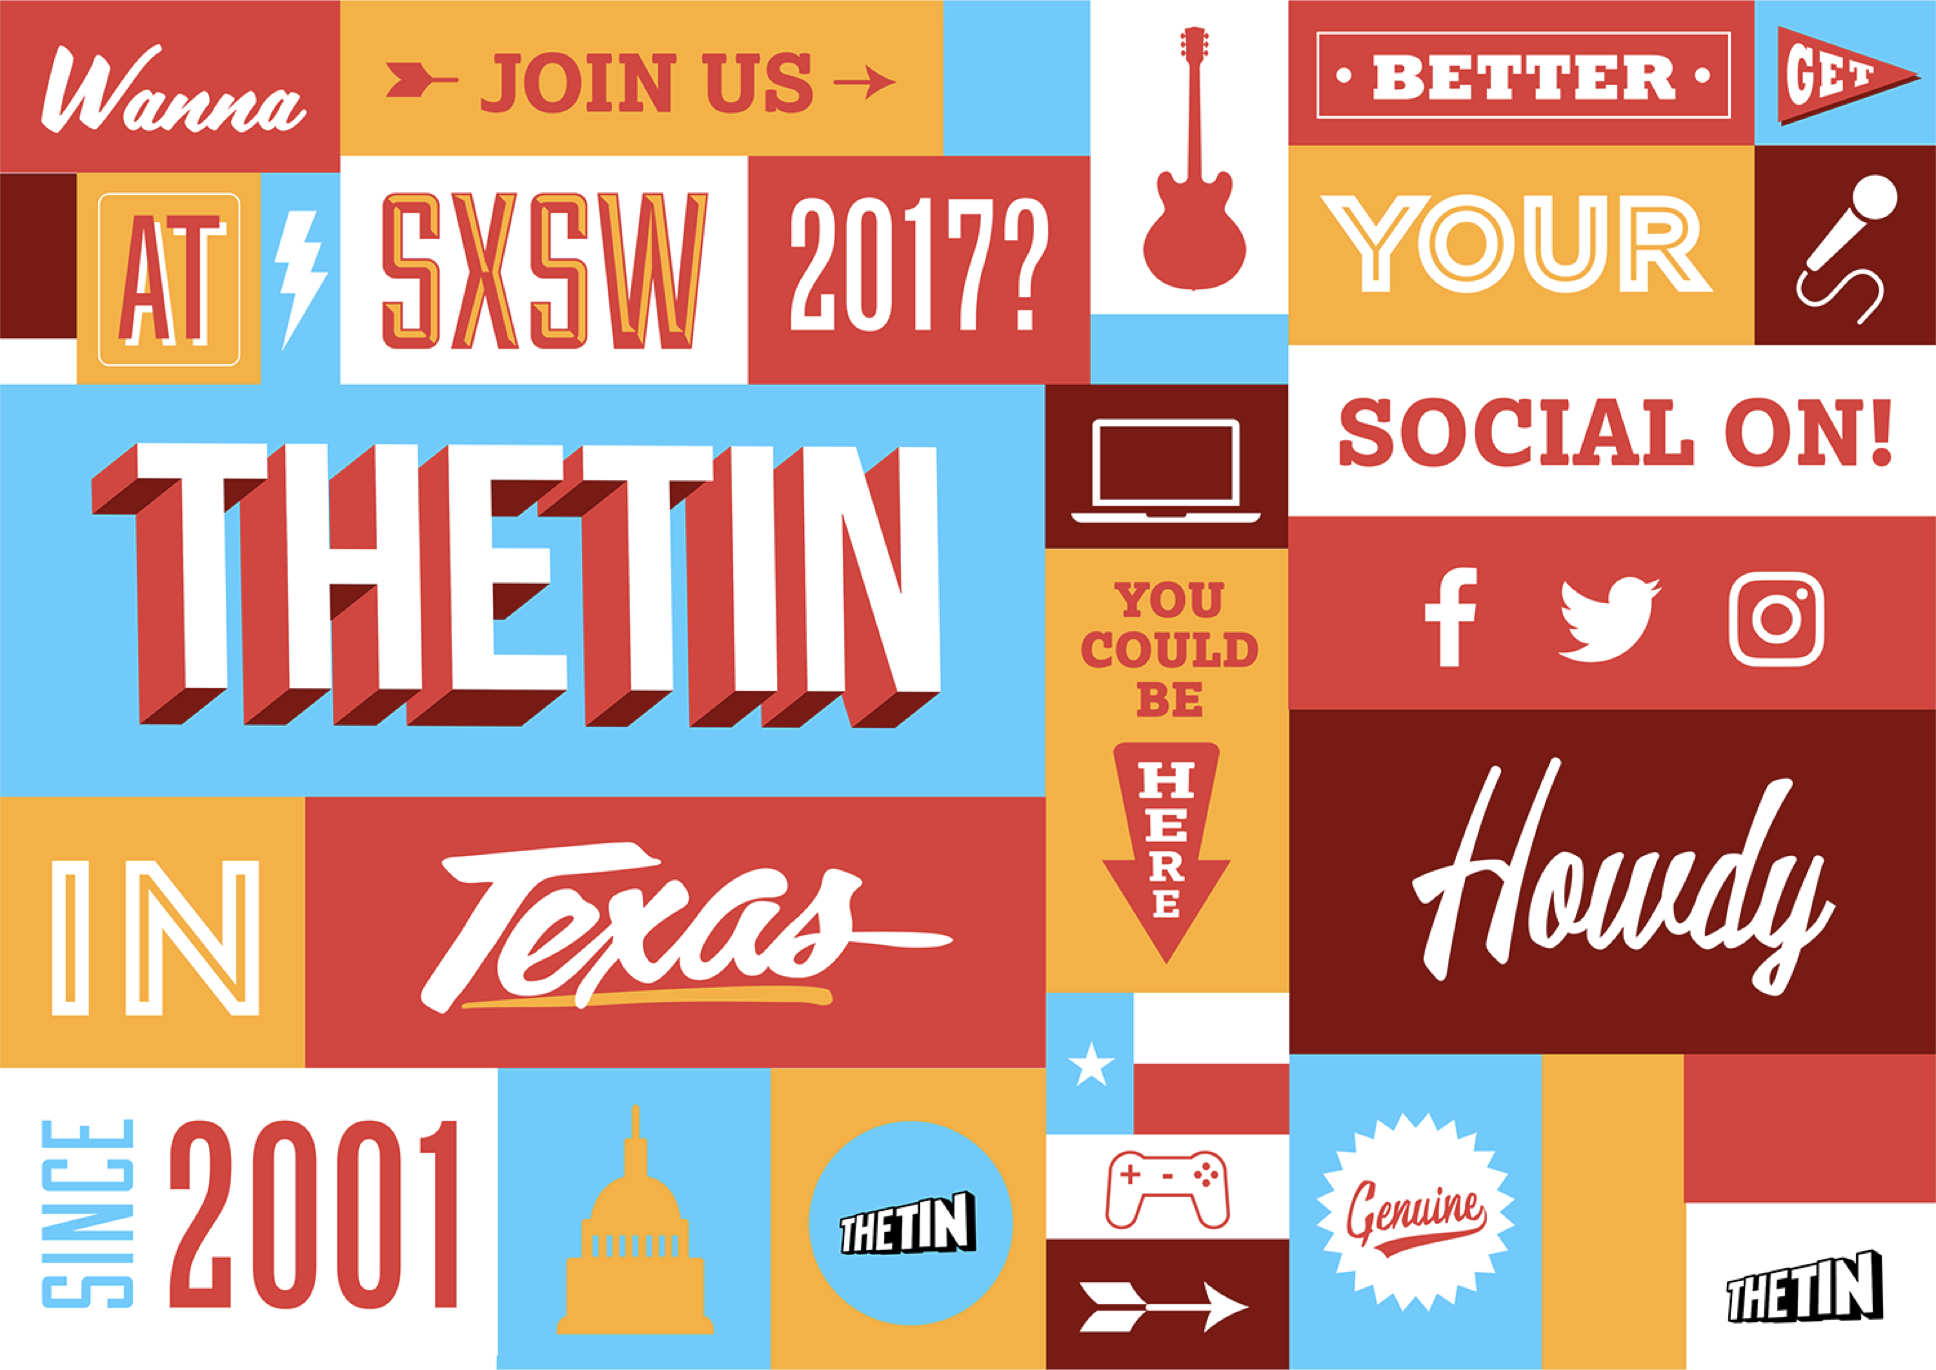 Selling internets and a glimpse of the future at SXSW 2017